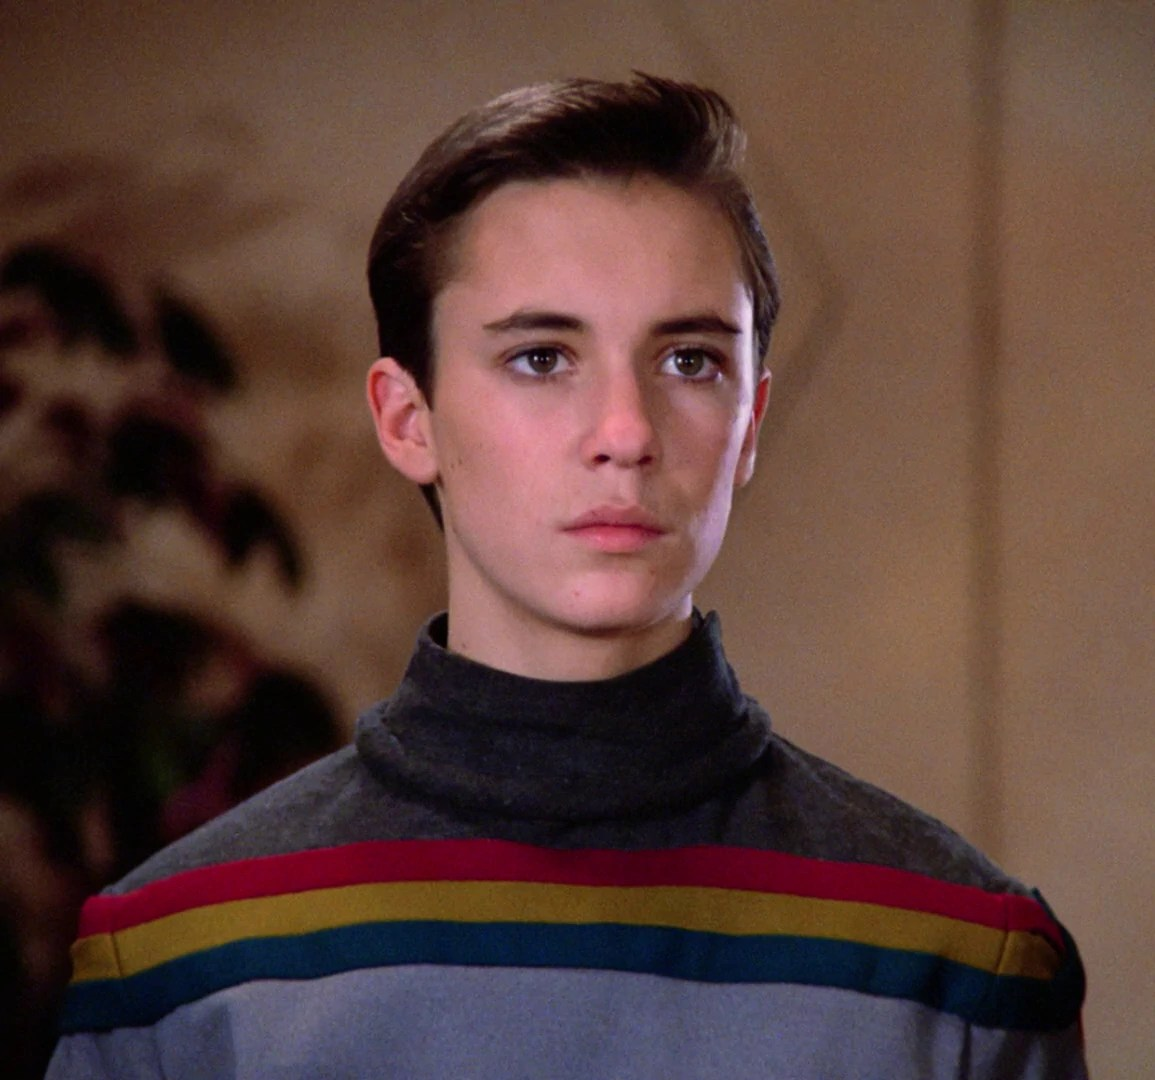 Wil Wheaton sans magnificent beard.